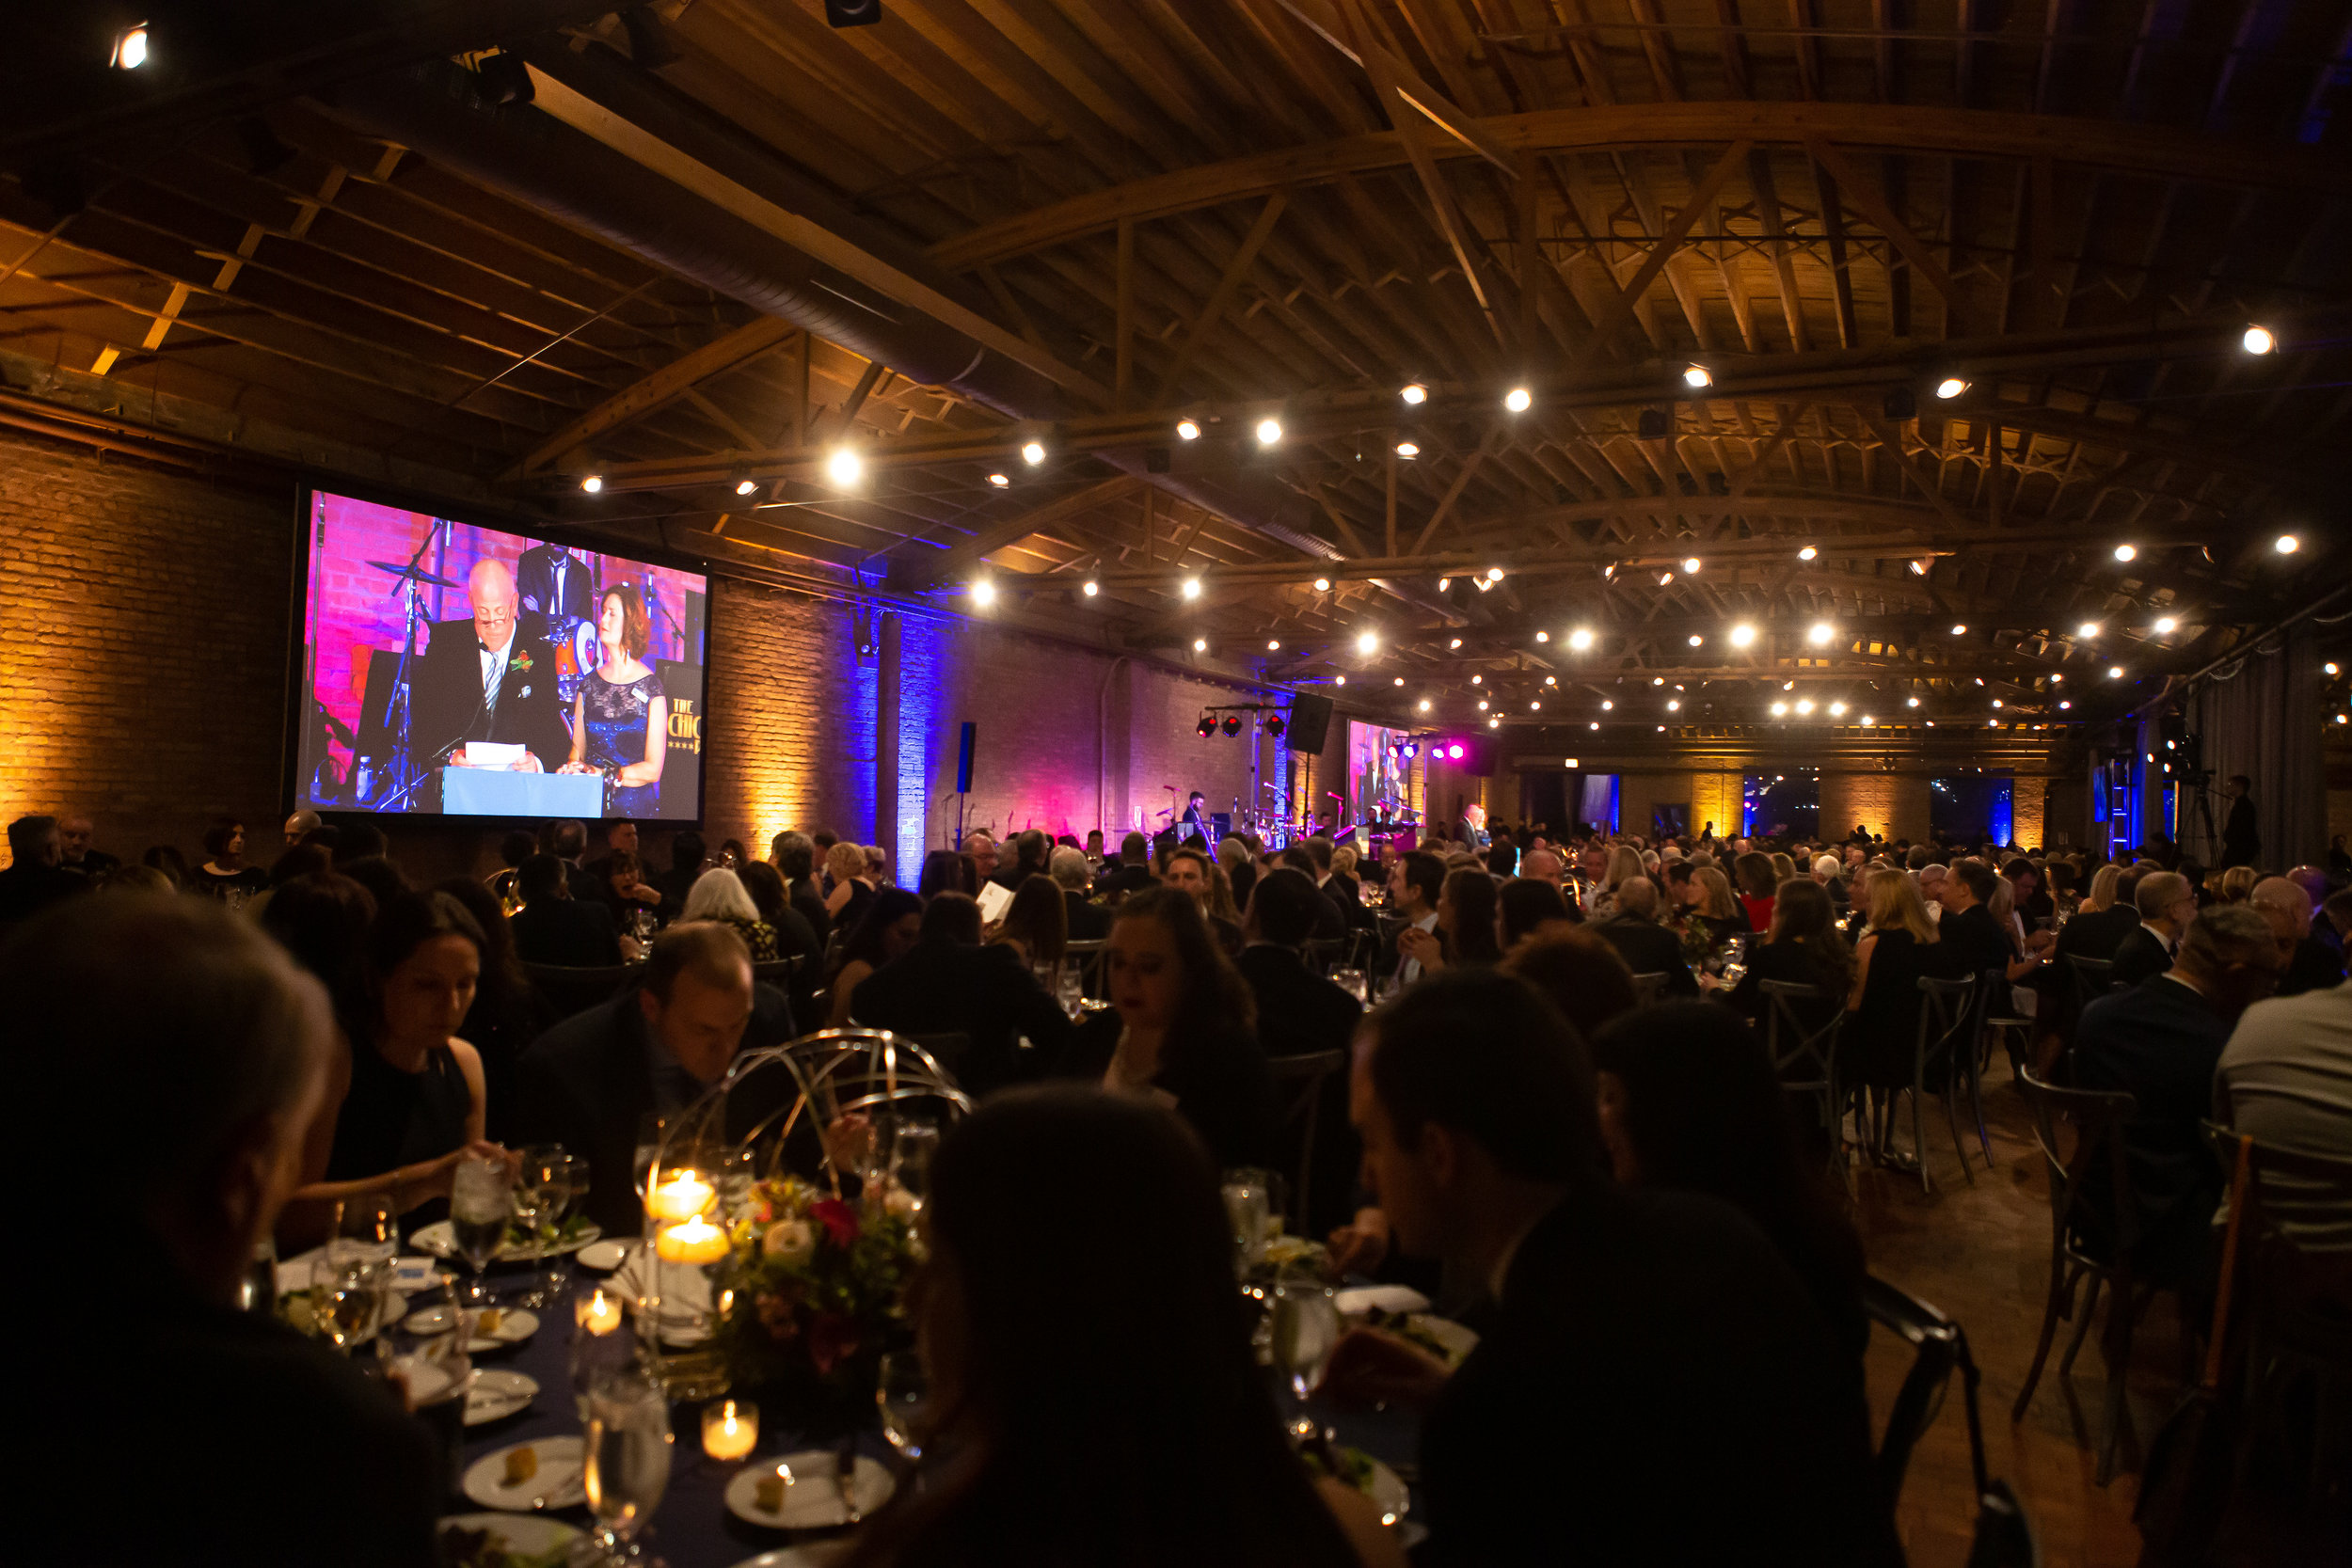 Event Spaces - Our team provides the latest audio and visual equipment to bring your special events to the next level. Our staff will consult with you and help you choose from our inventory of equipment to make your event unforgettable. It doesn't matter what size your convention is, the Vantage AV team stands by our promise to help you make it an unforgettable experience.Past Client: Indianapolis Convention Center